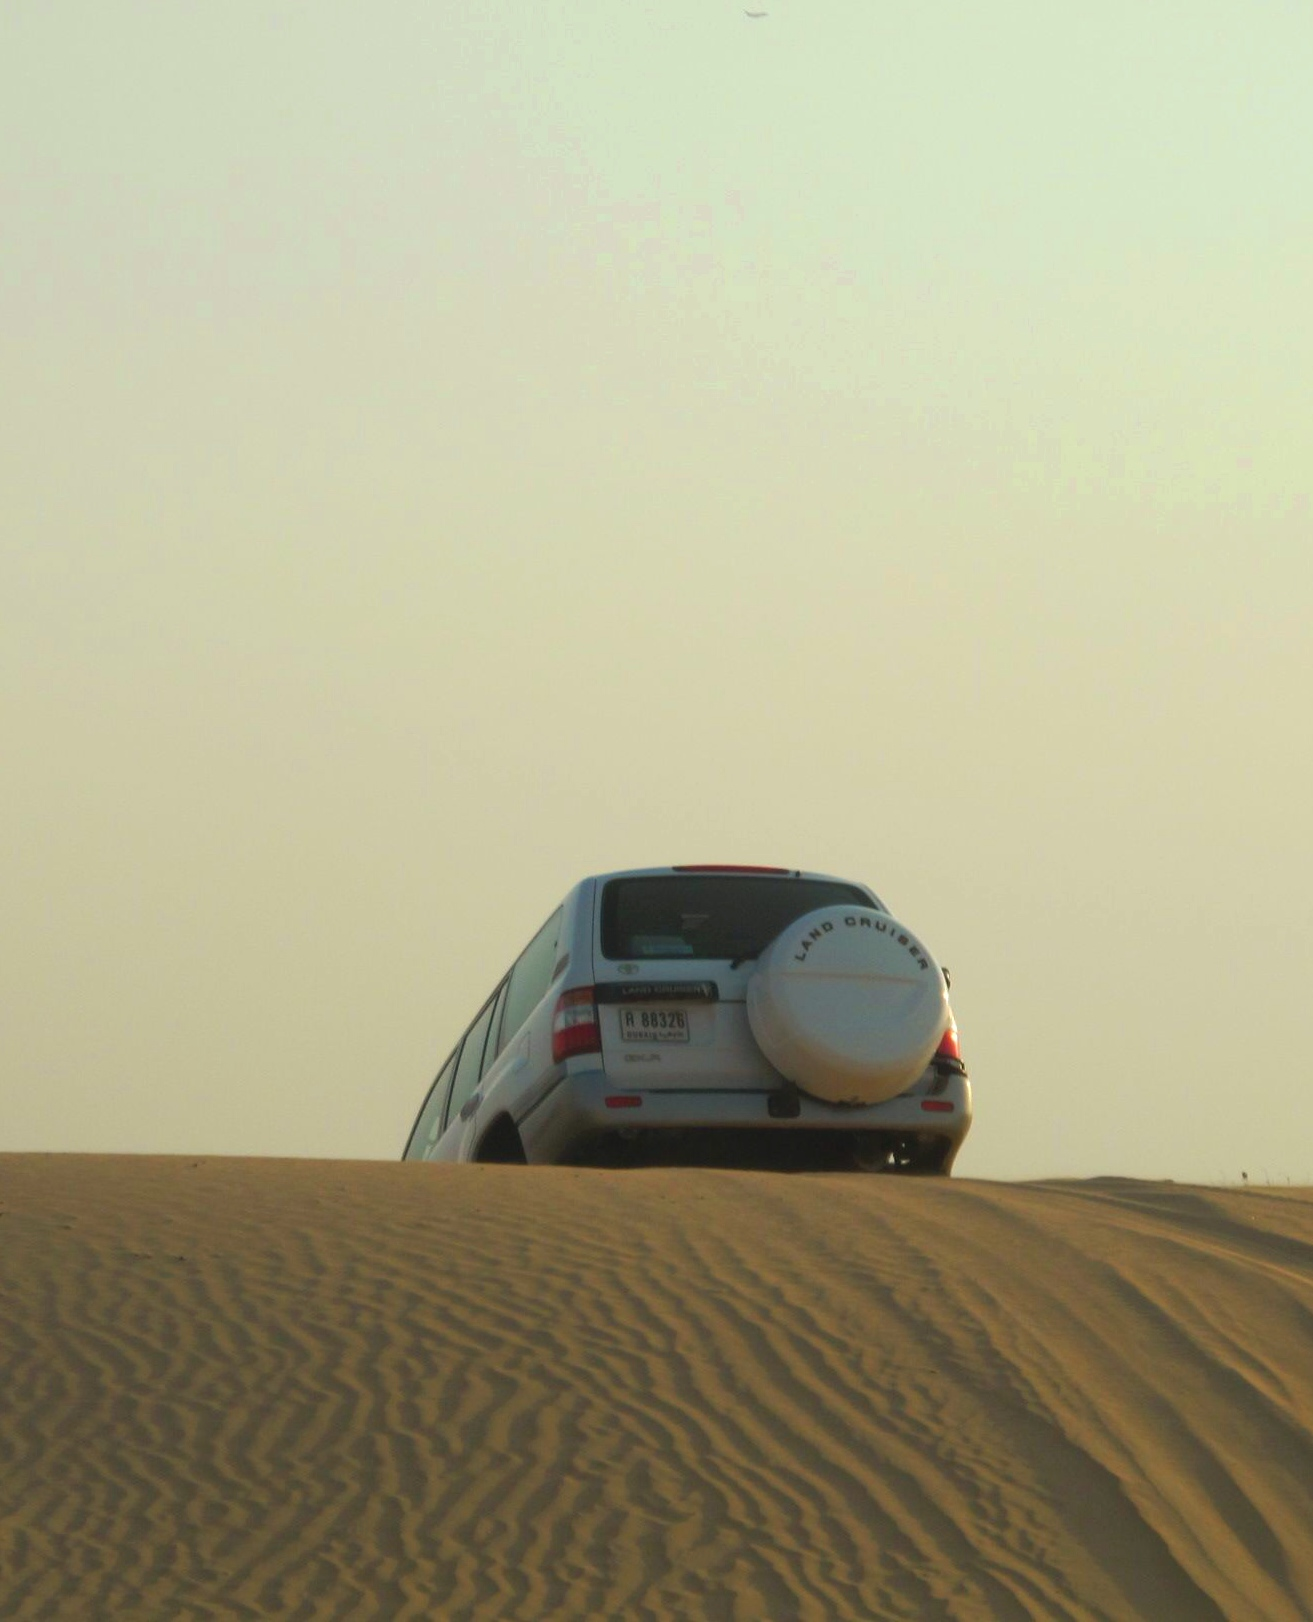 Thrill Ride & Giant Sandbox:  Desert Safari In Dubai